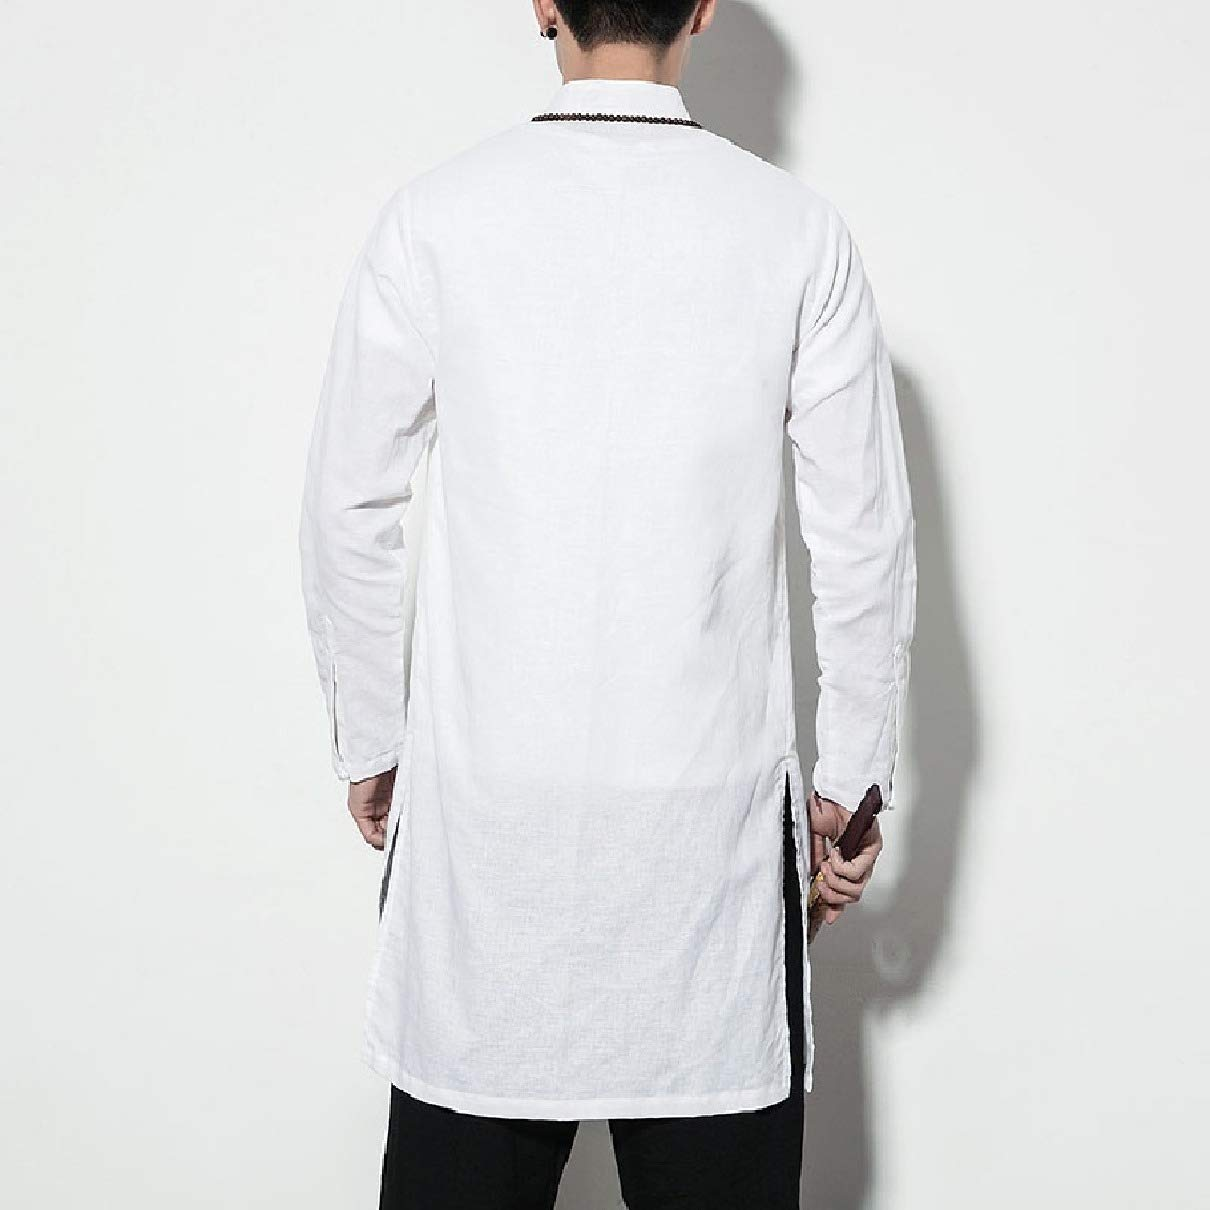 Coolred-Men Solid-Colored Button-Front Long-Sleeve Longline Woven Shirt